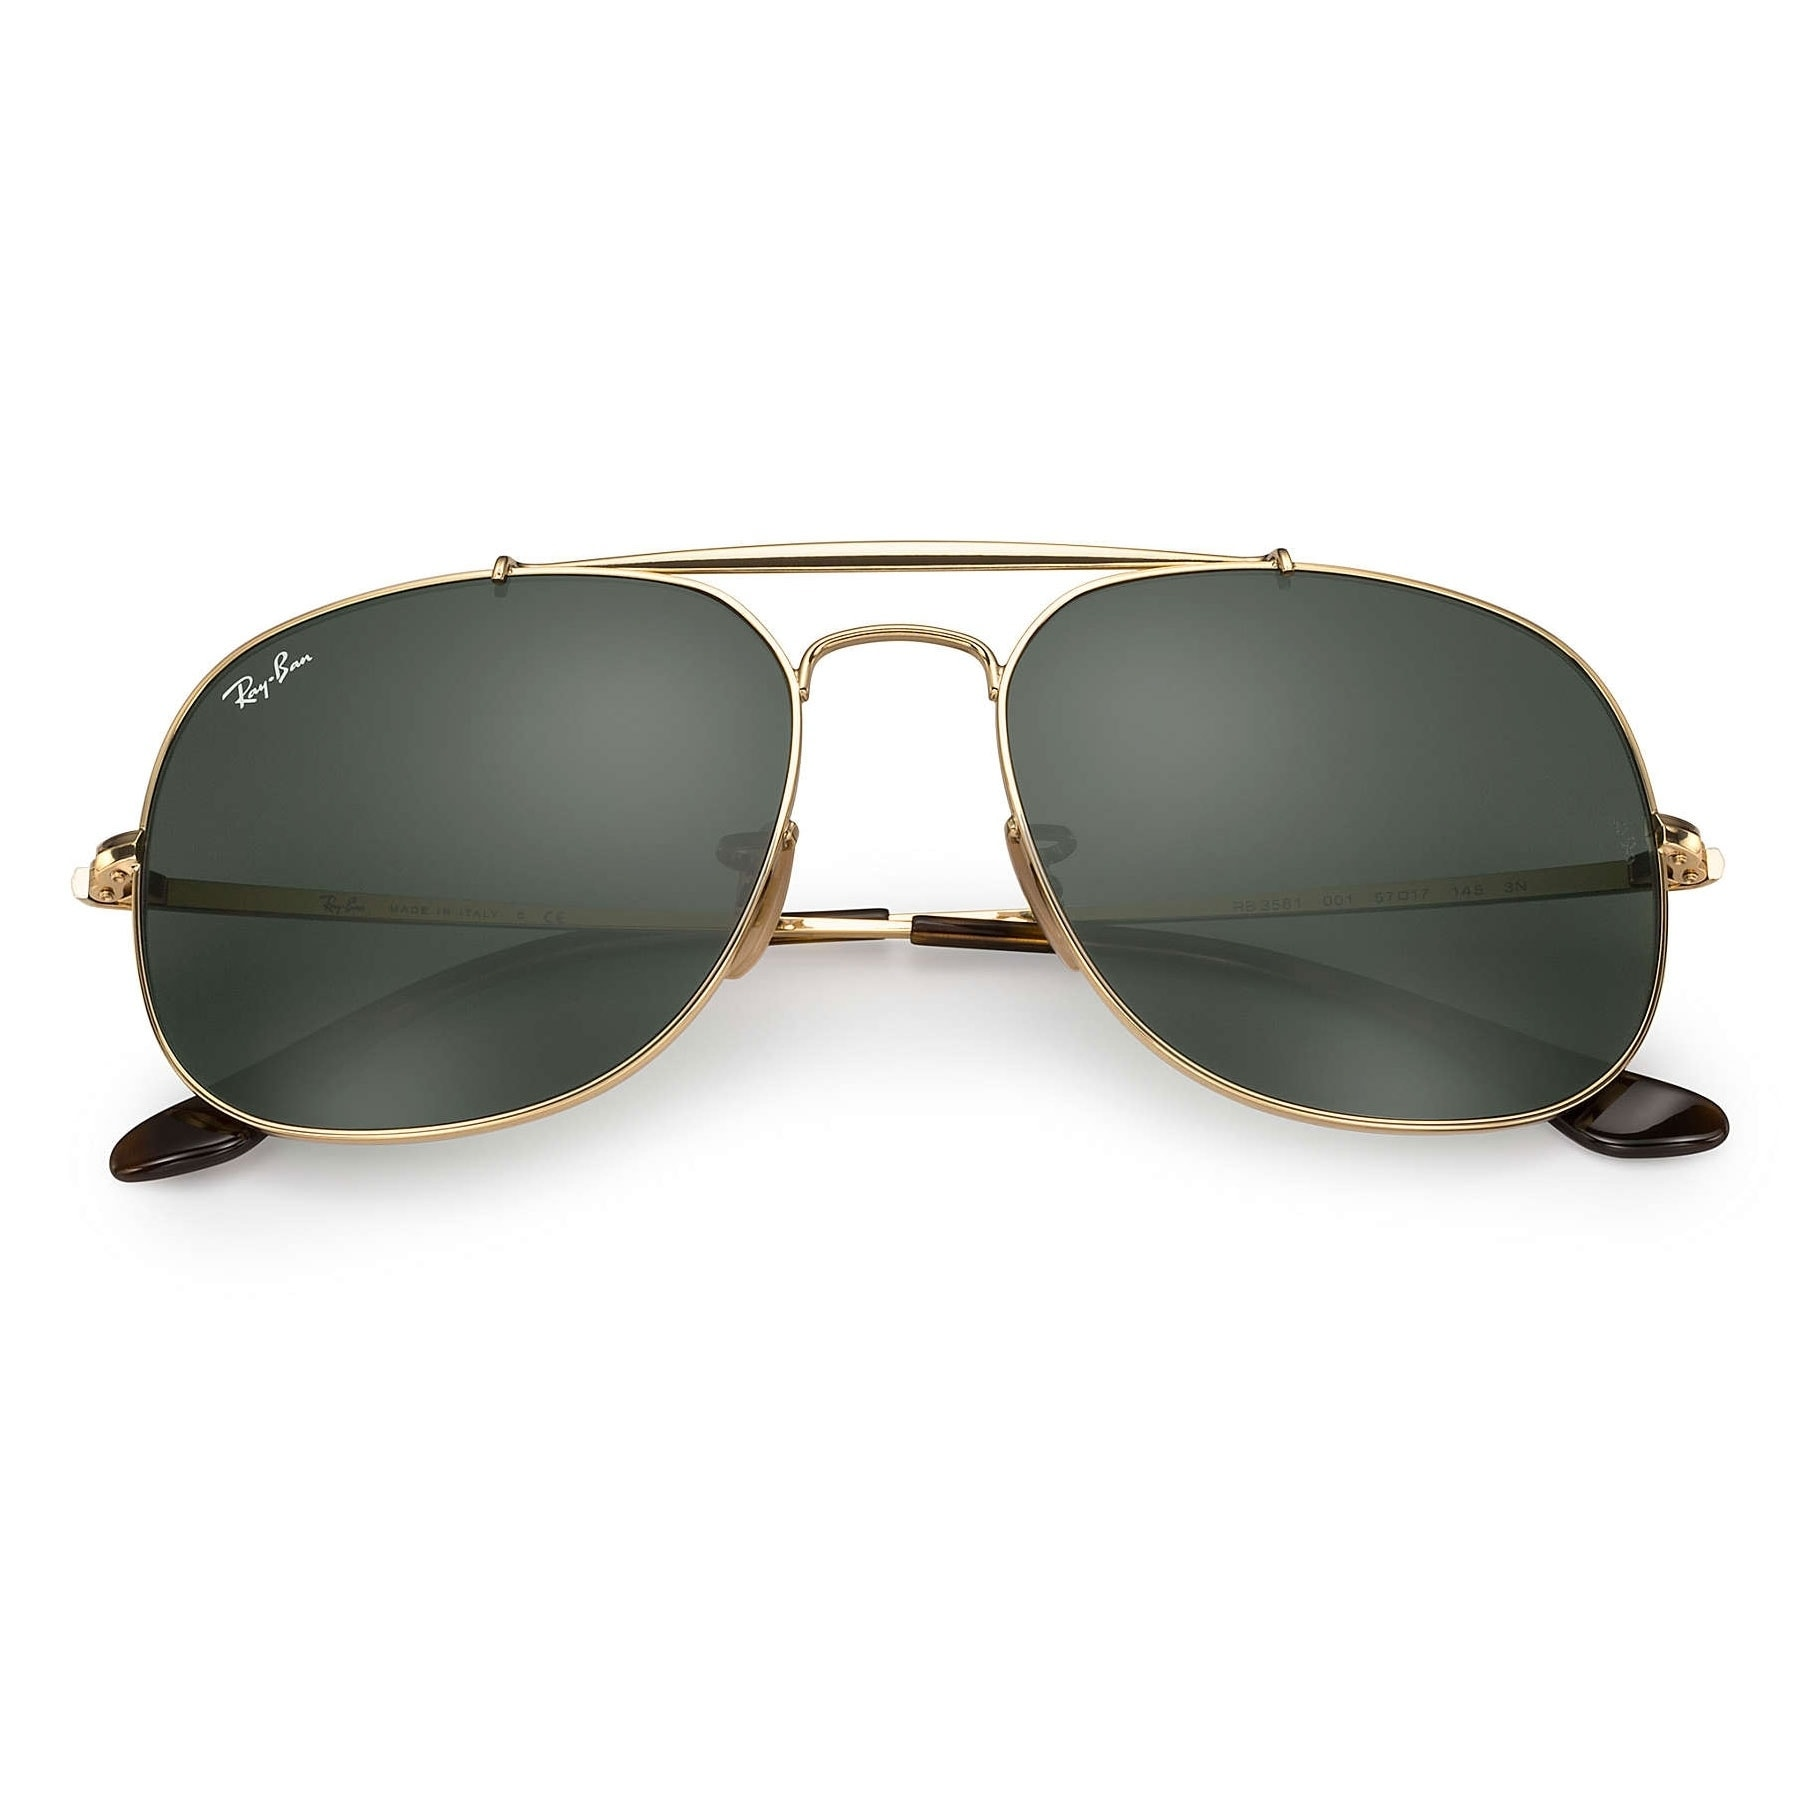 9765505b04 Shop Ray-Ban RB3561 General Sunglasses Gold  Green Classic 57mm - Gold -  Free Shipping Today - Overstock - 20599786